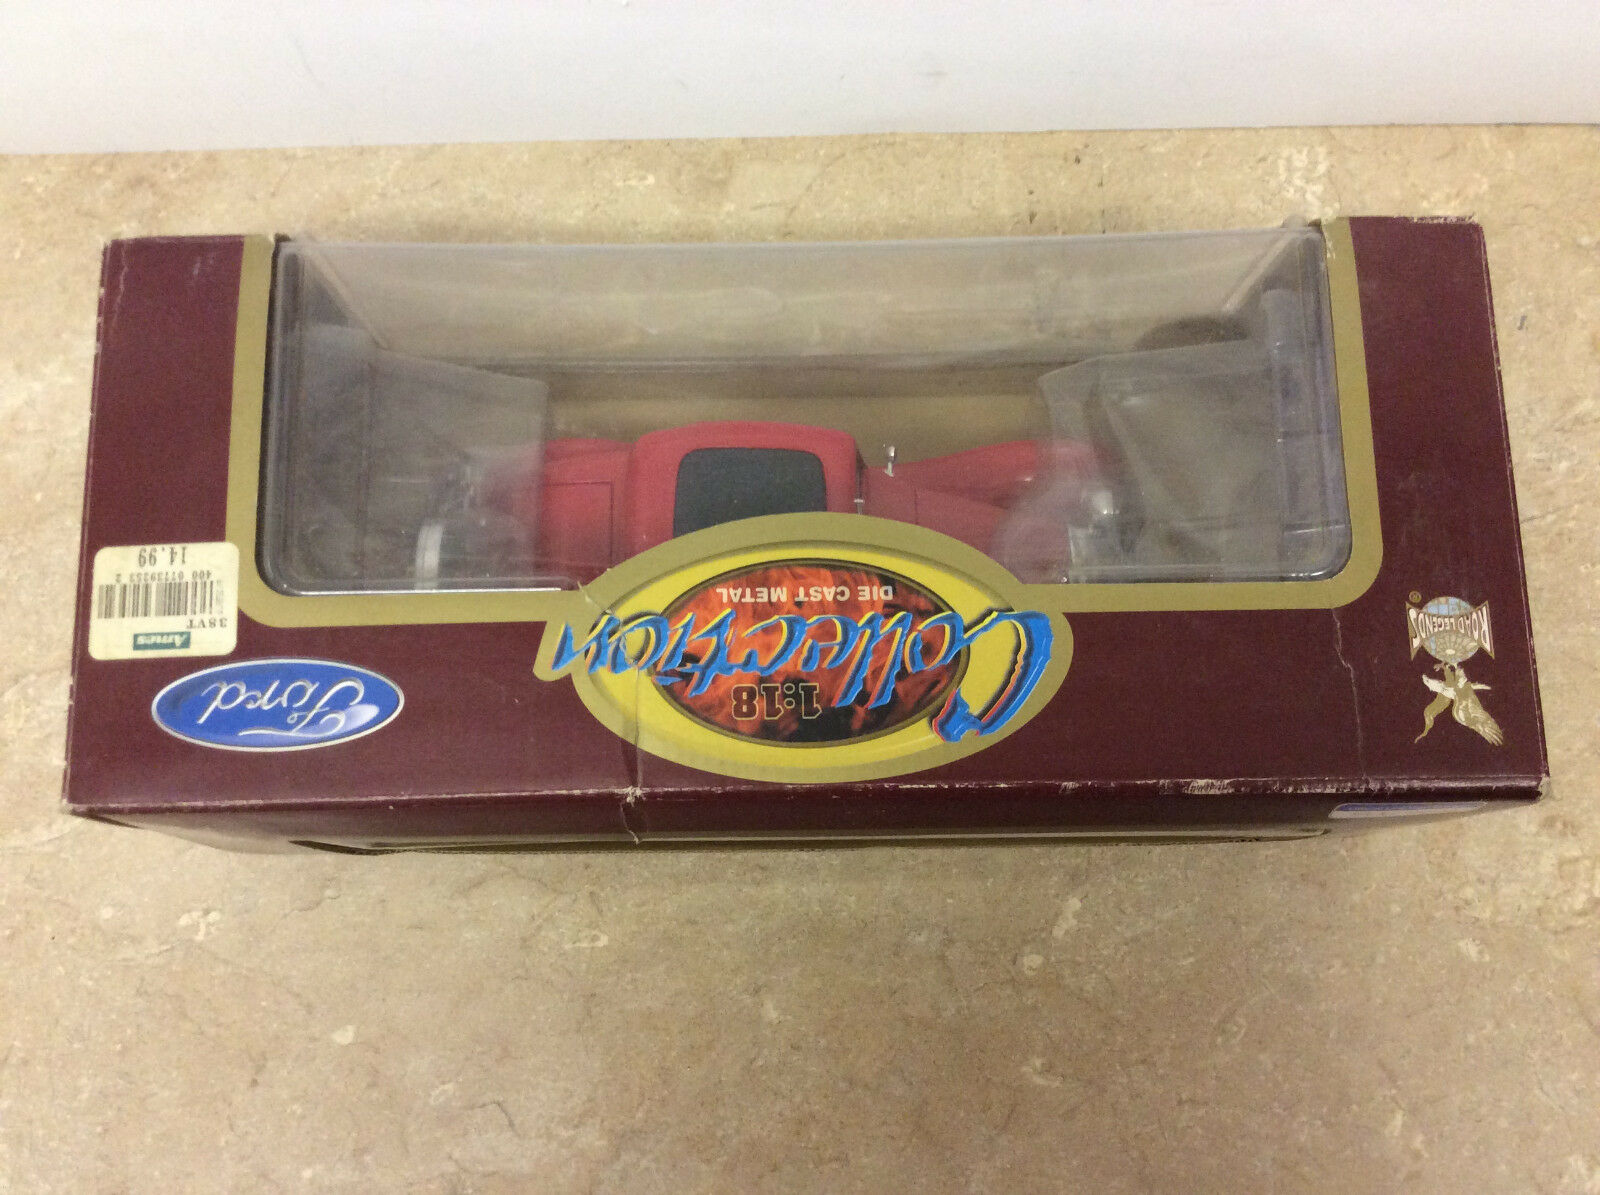 1 18 Diecast Road Road Road Legends Ford 1932 3 Window Red Car Open Box  Shelf Wear  15f7de